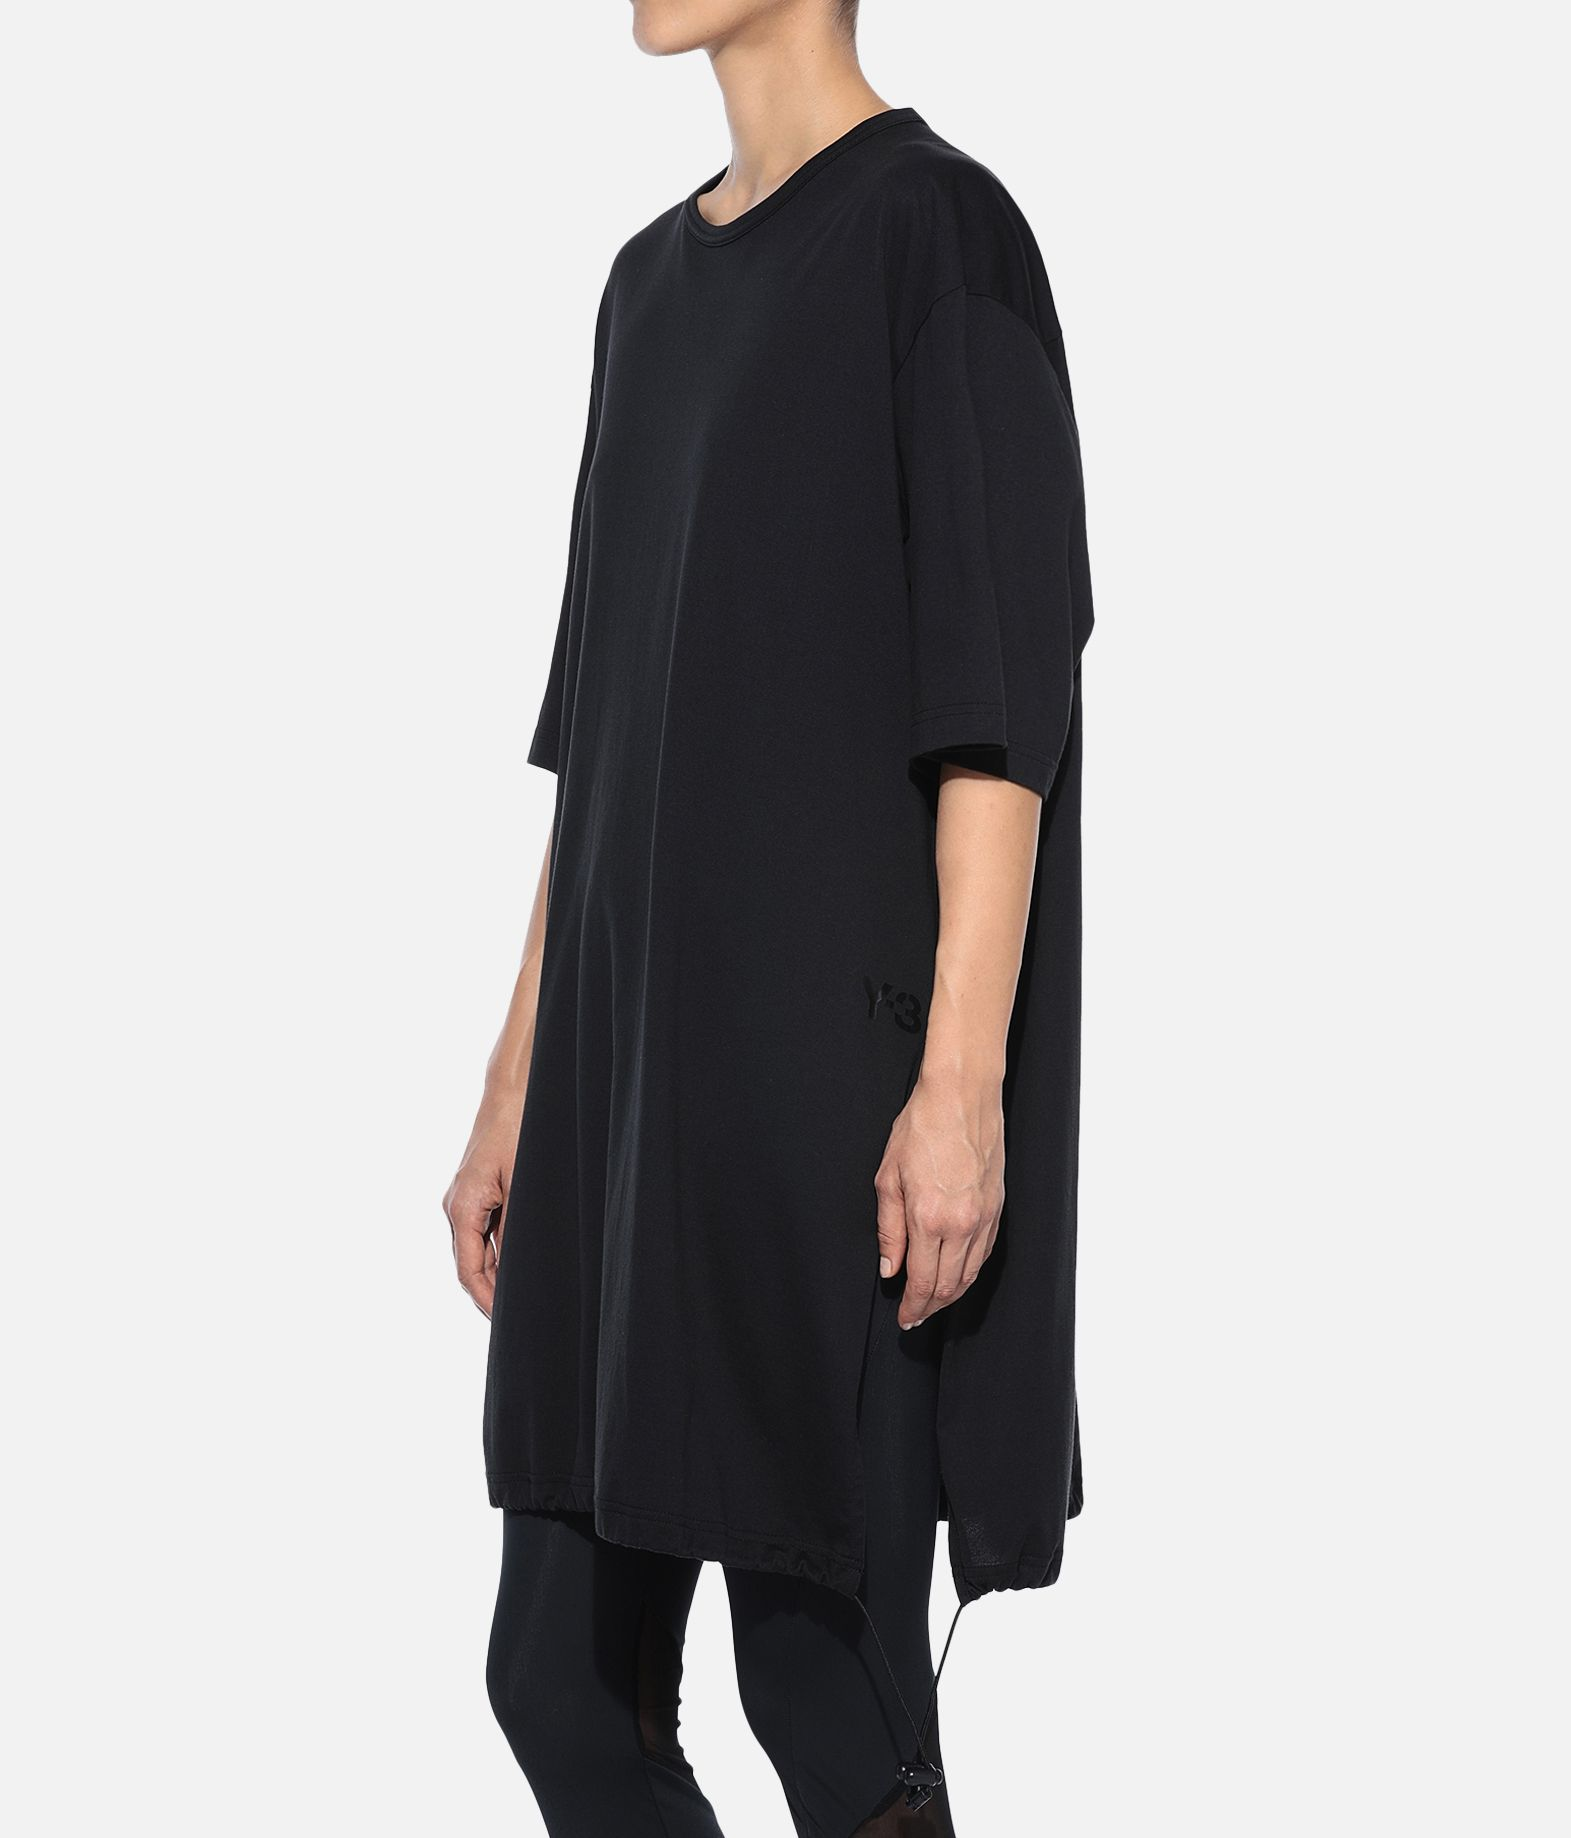 Y-3 Y-3 Drawstring Long Tee Short sleeve t-shirt Woman e